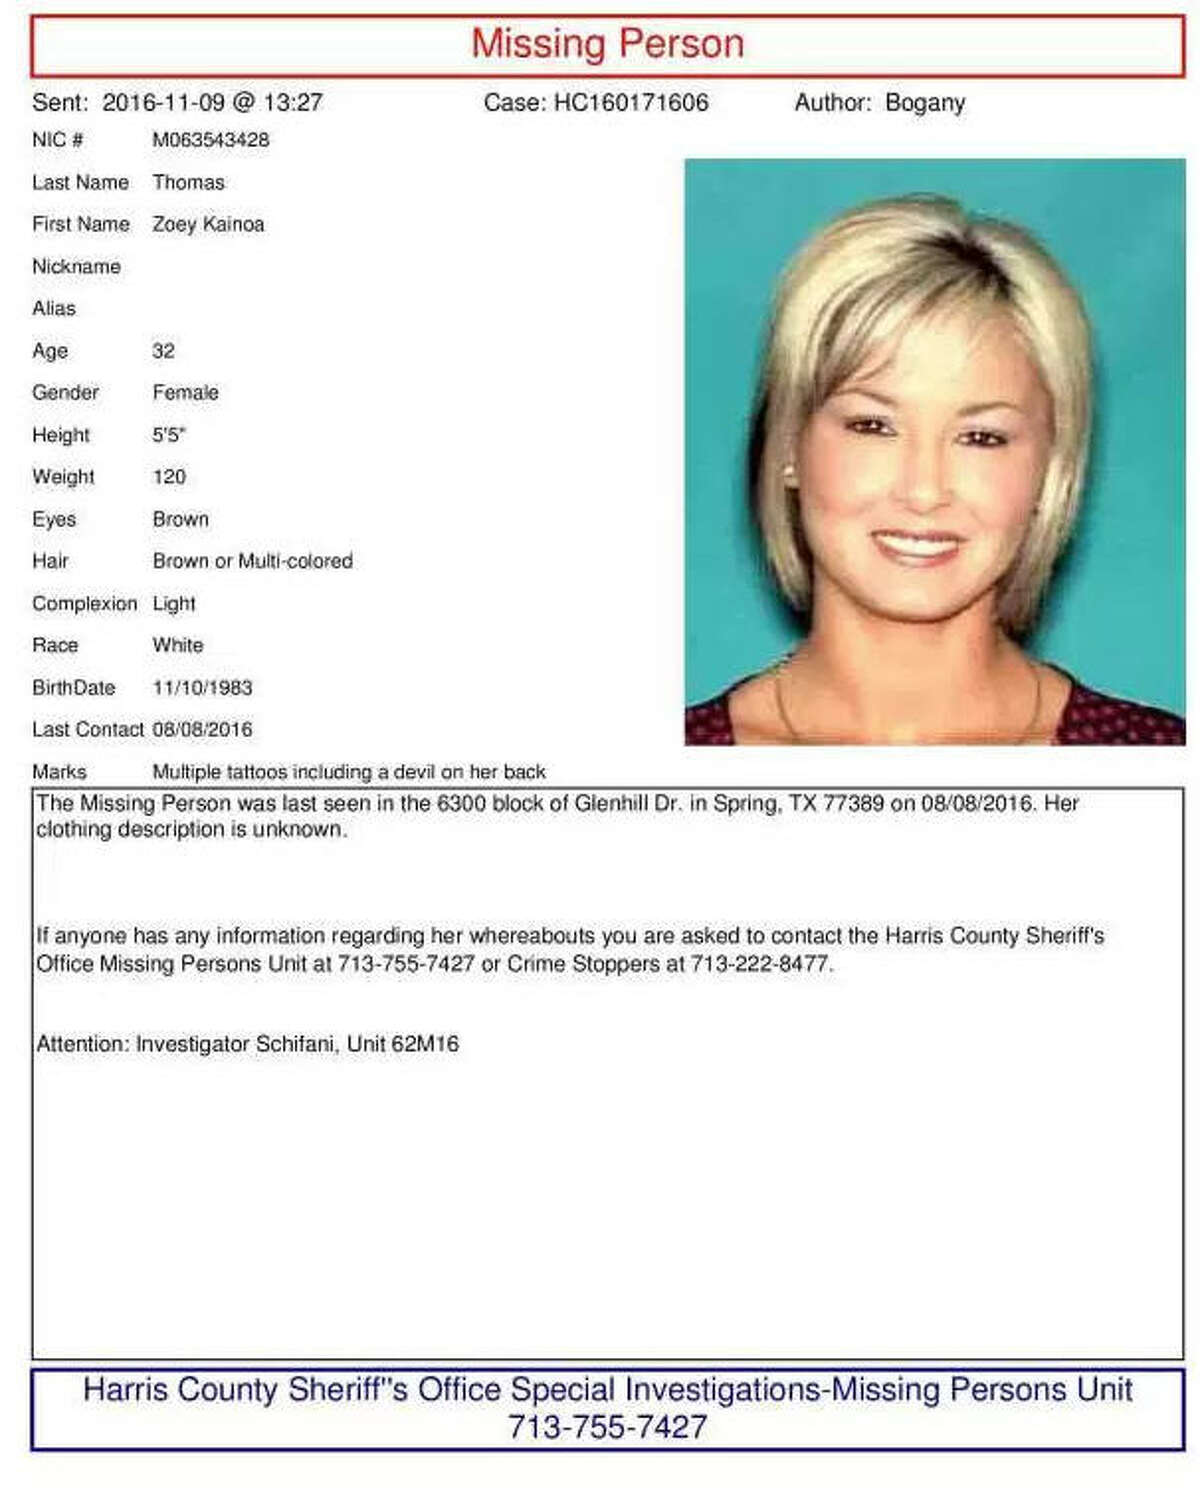 Zoe Thomas Missing since Aug. 8, 2016 From: Harris County Sheriff's Office